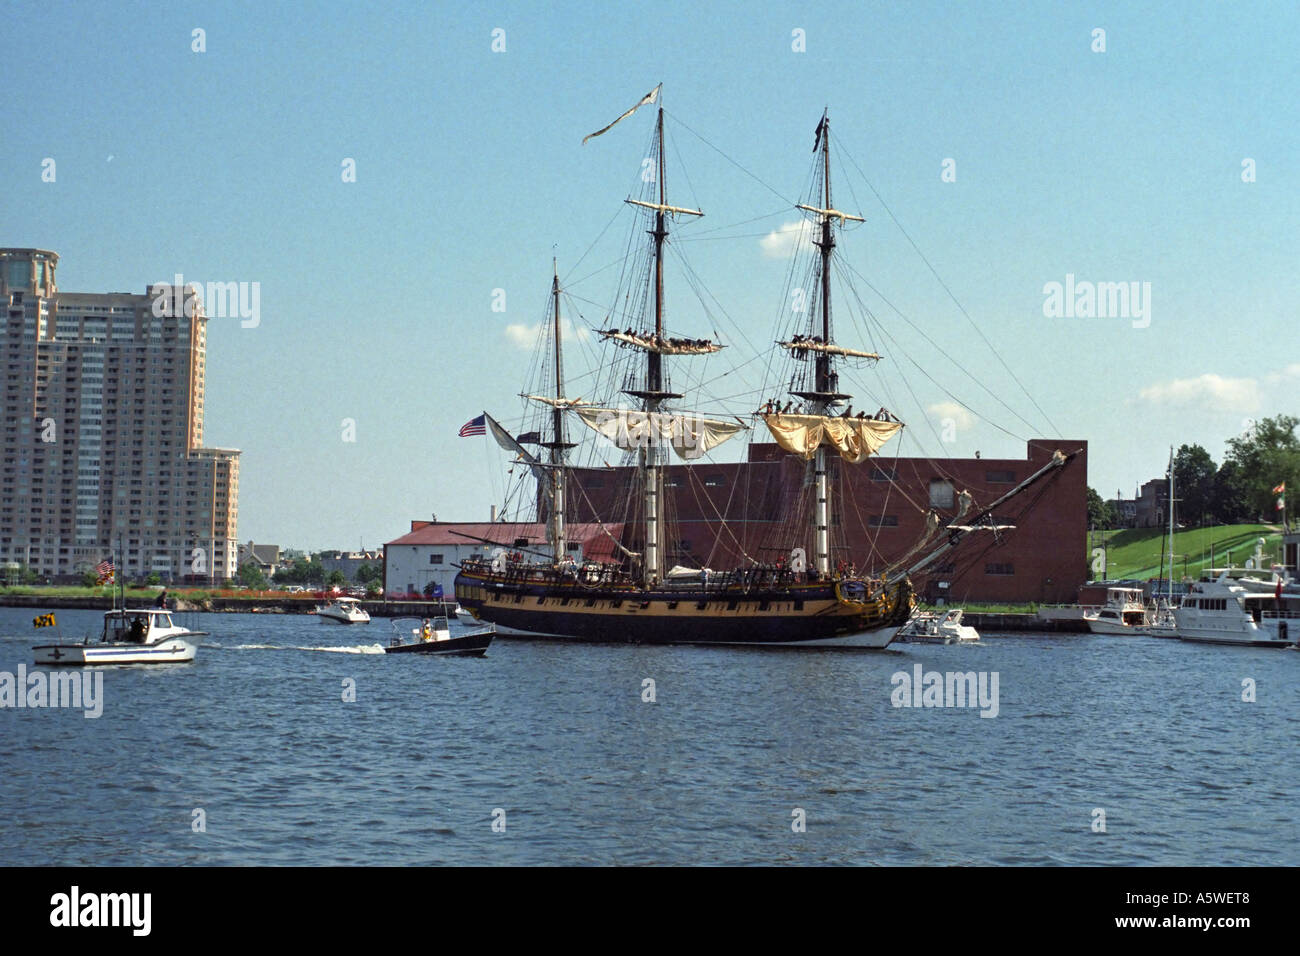 Tall ship in Baltimore Harbor, Md during Opsail - Stock Image